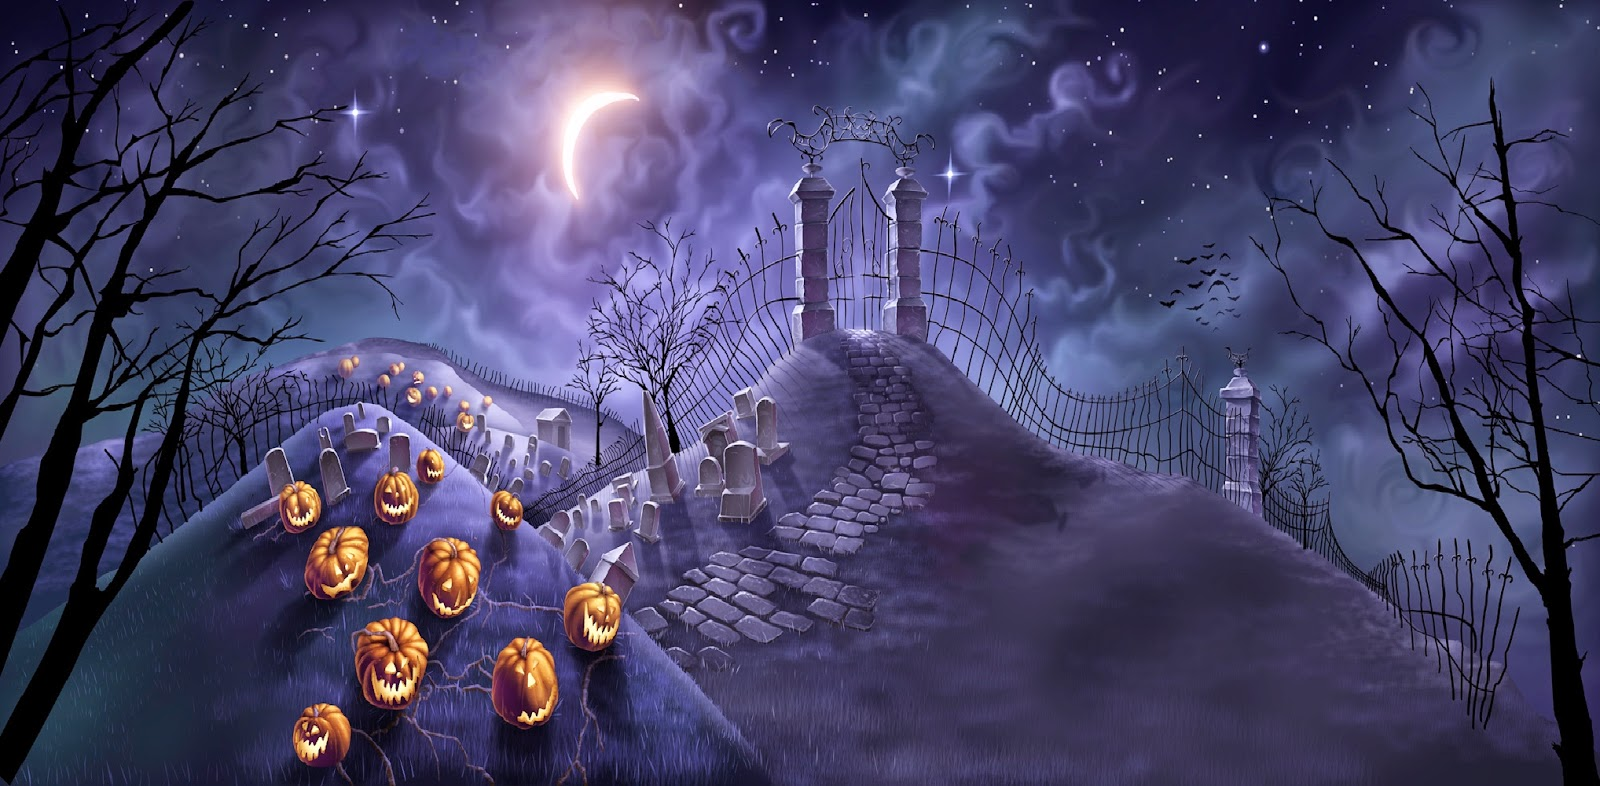 2036x1000-Graveyard-with-pumpkin-images-for-Halloween-holiday-sharing-HD.jpg